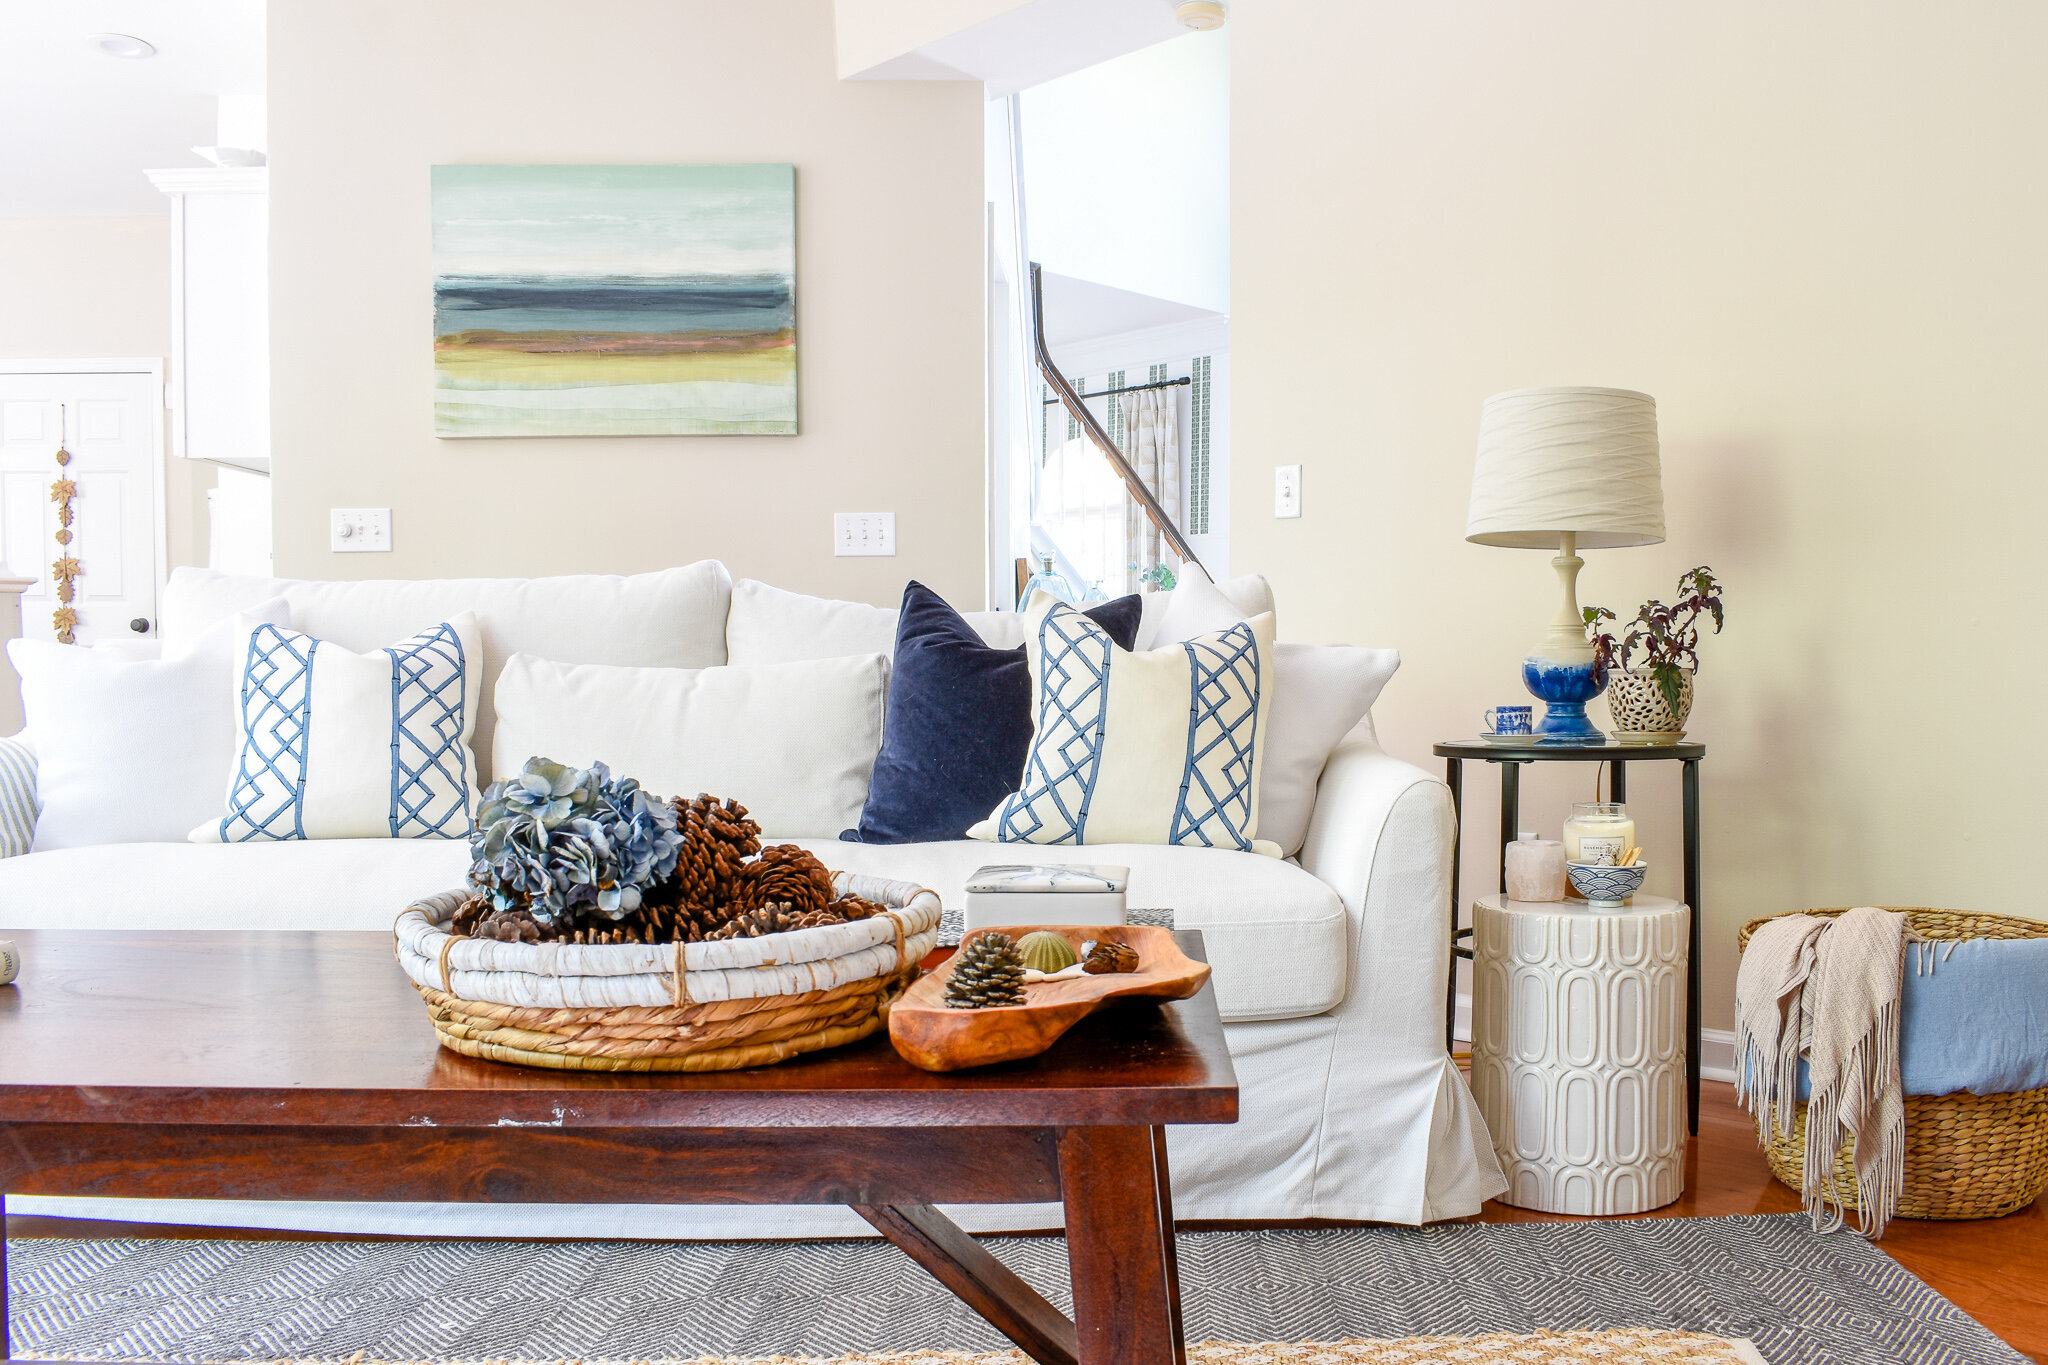 Living Room Decor - blue and white with natural accents